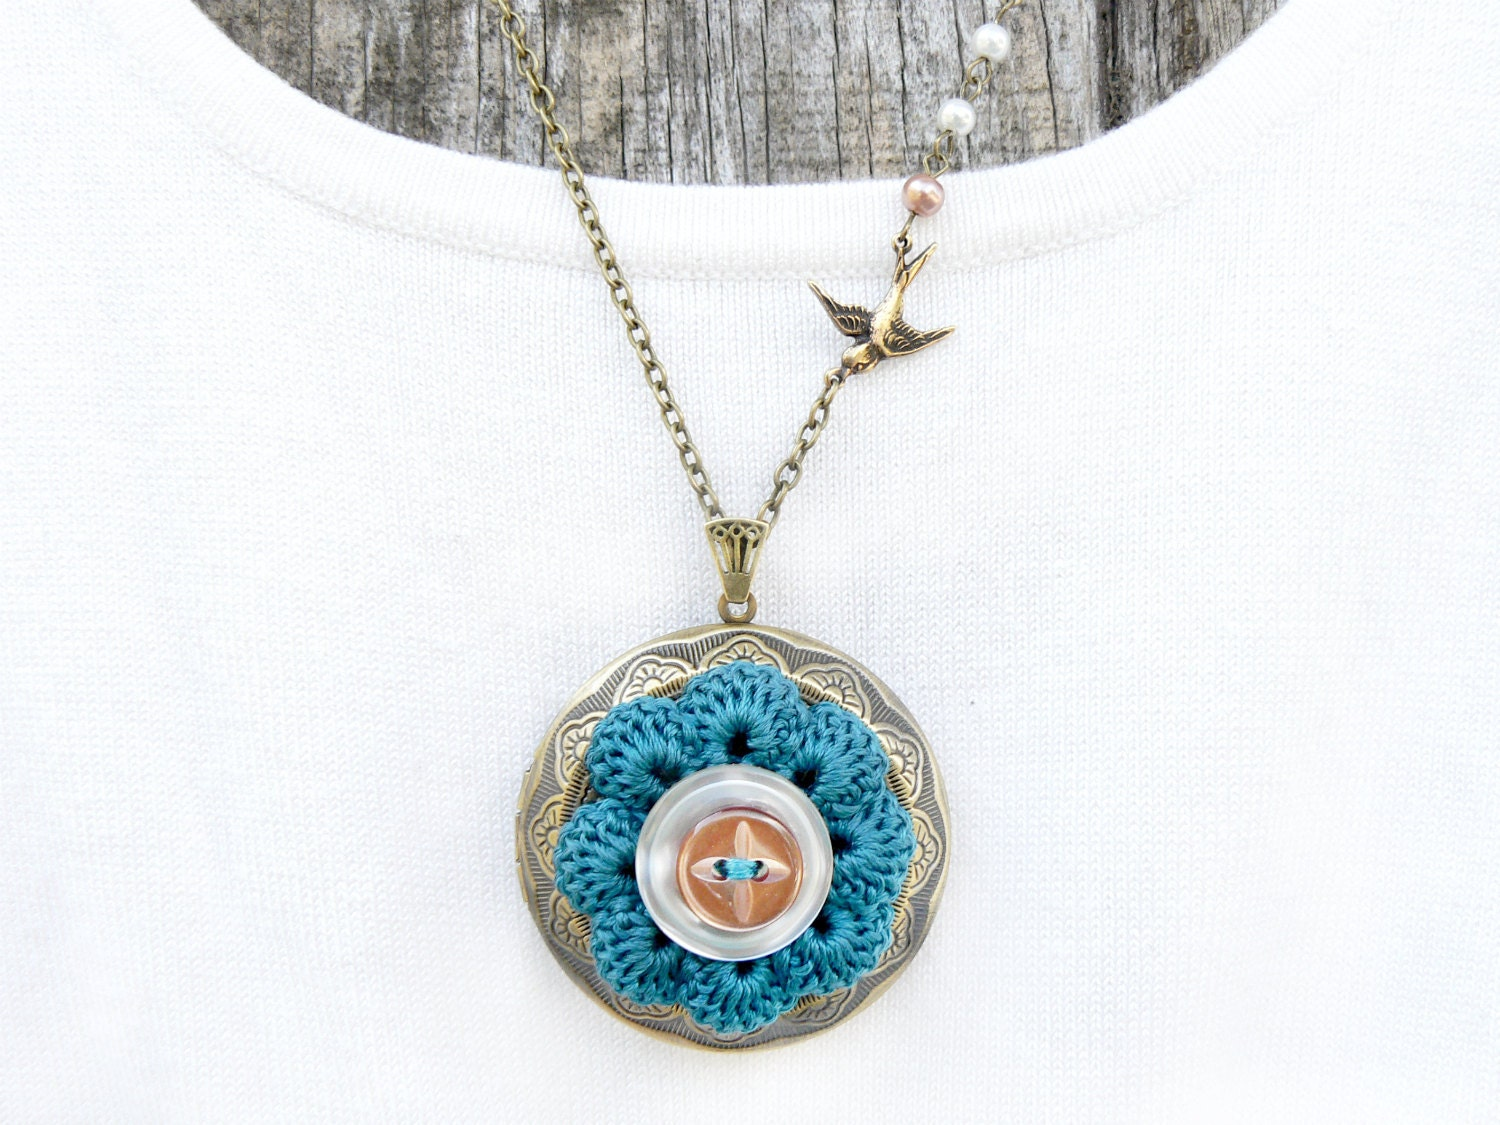 Crochet Flower Locket with Ocean Teal 100% Cotton Thread, Small Bird in Flight Charm and Glass Crystal Mini White and Beige Pearls - MakingsofShannaTice